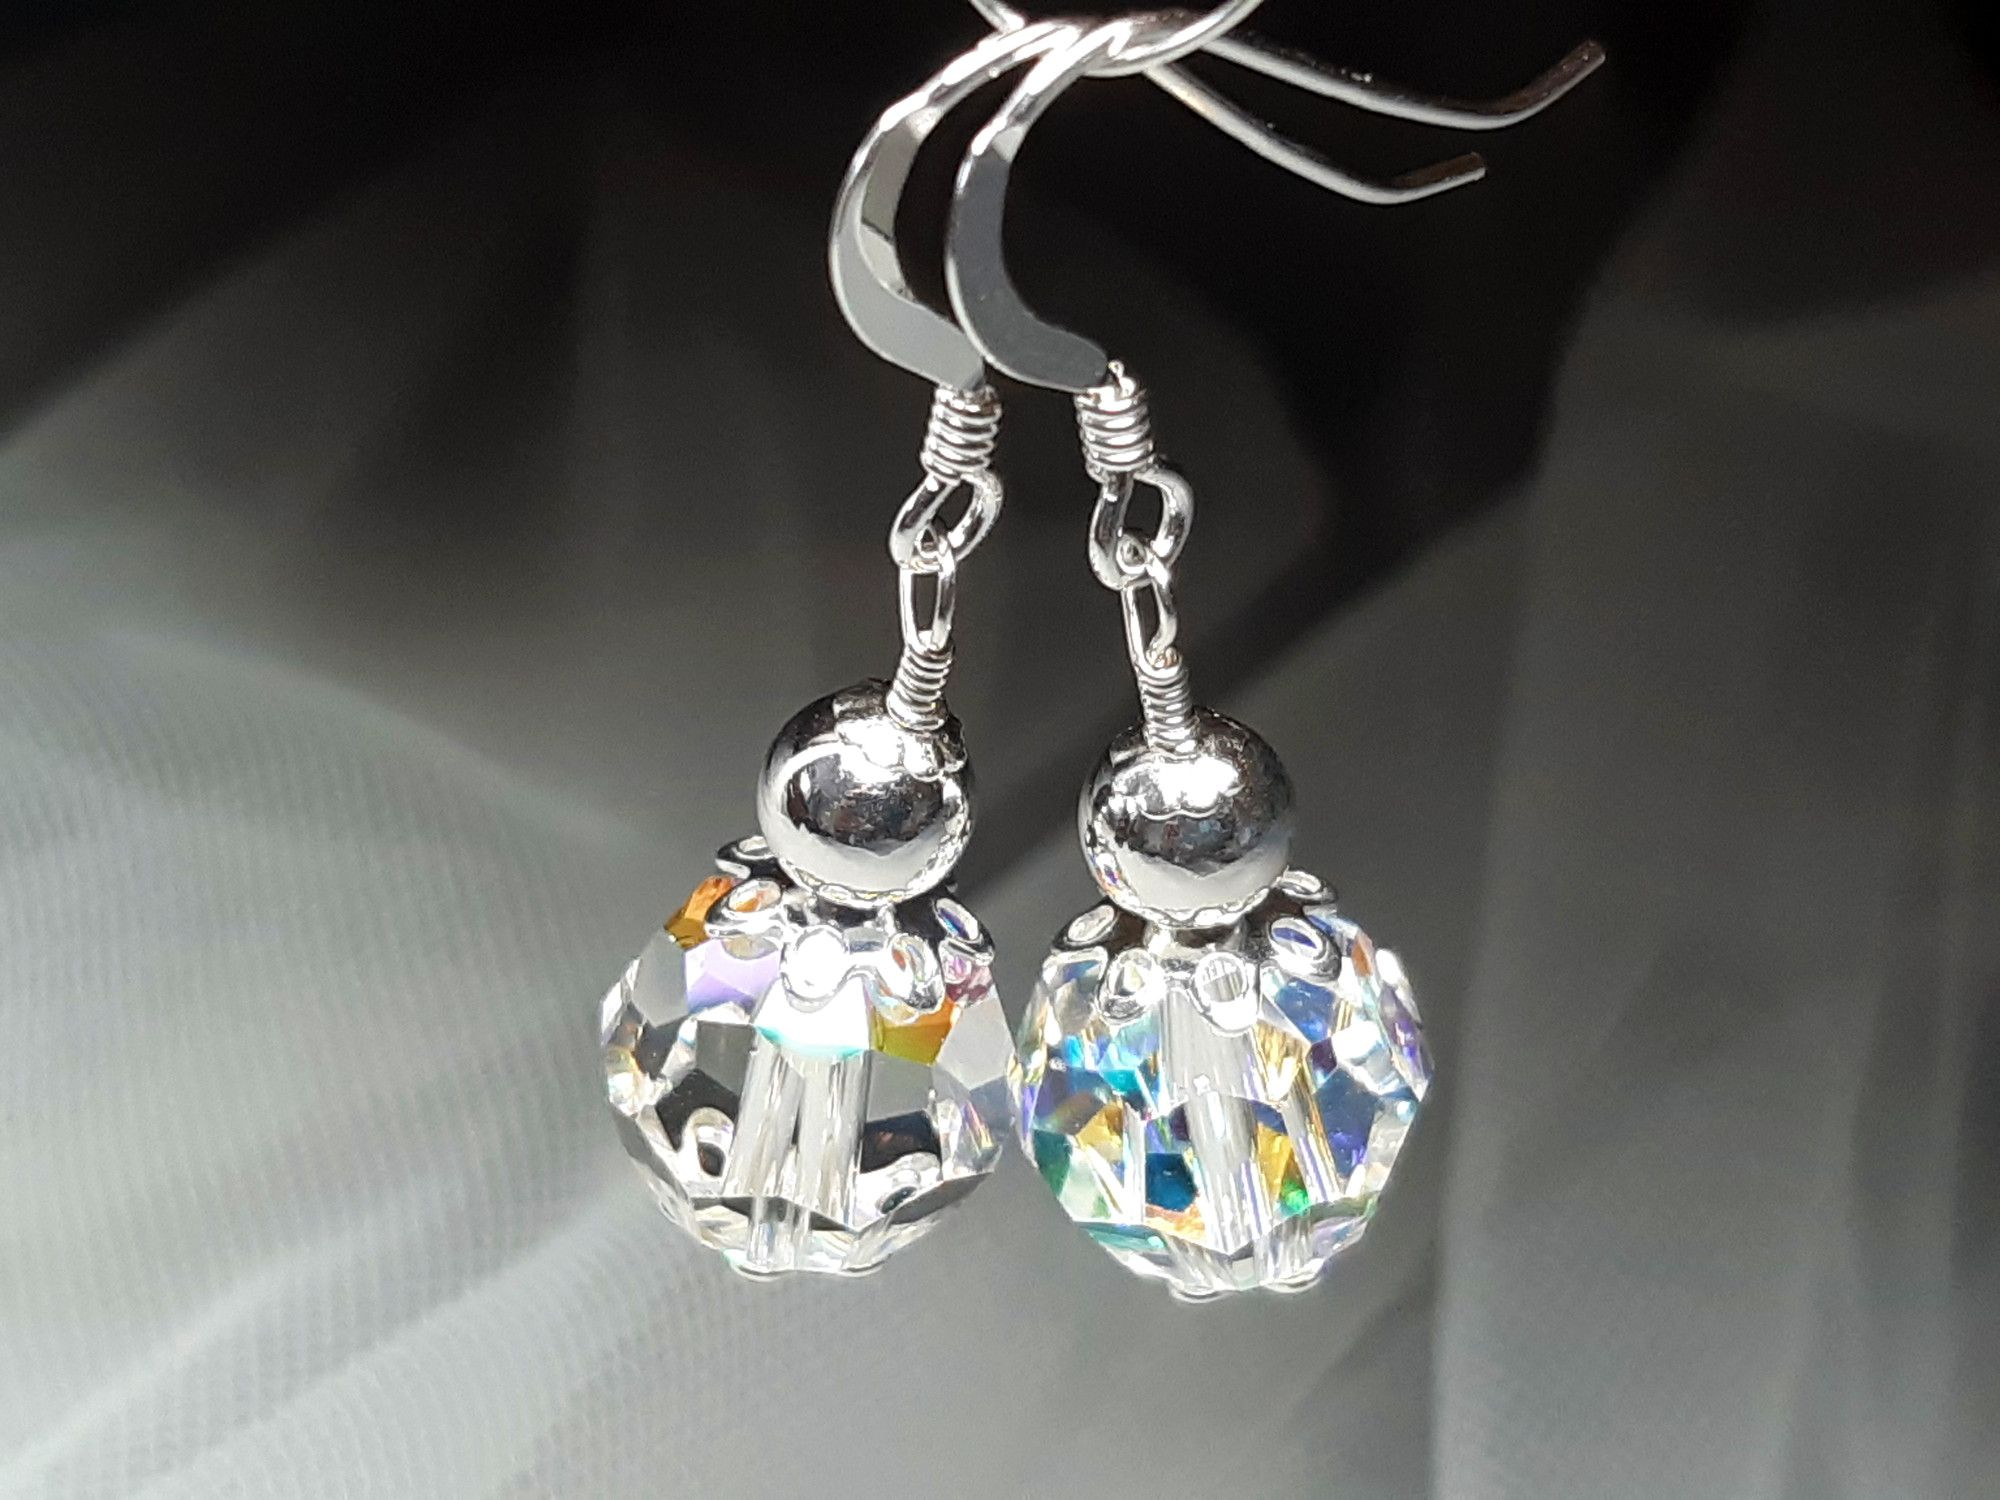 Occasion-bridal-earrings with swarovski crystal+sterling silver-13.jpg